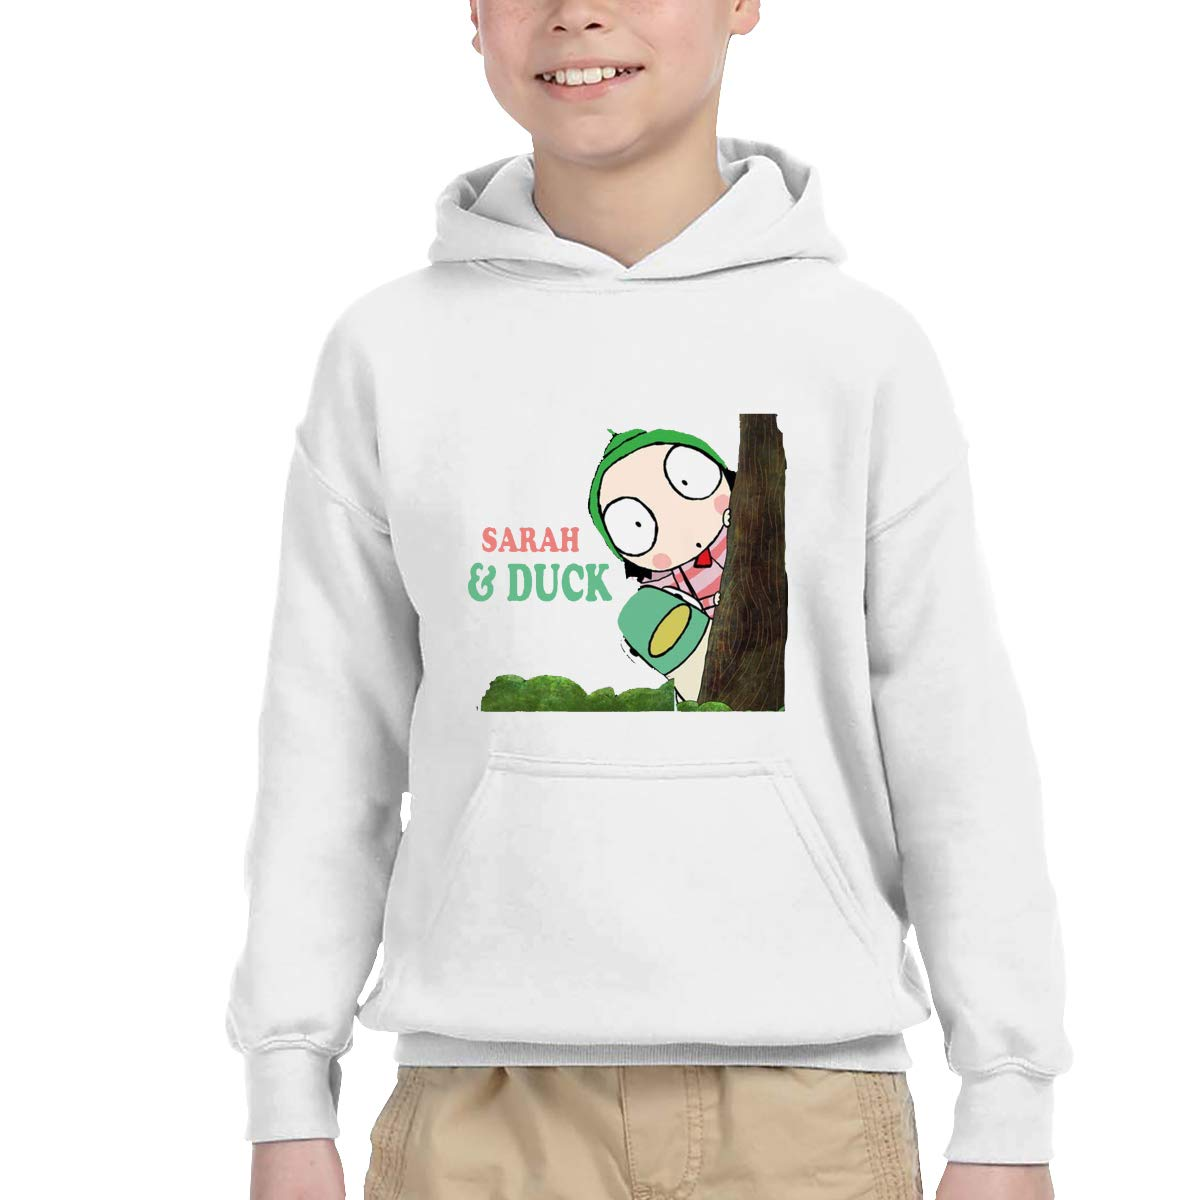 2-6 Year Old Childrens Hooded Pocket Sweater Personality Street Trend Creation Sarah /& Duck Logo White